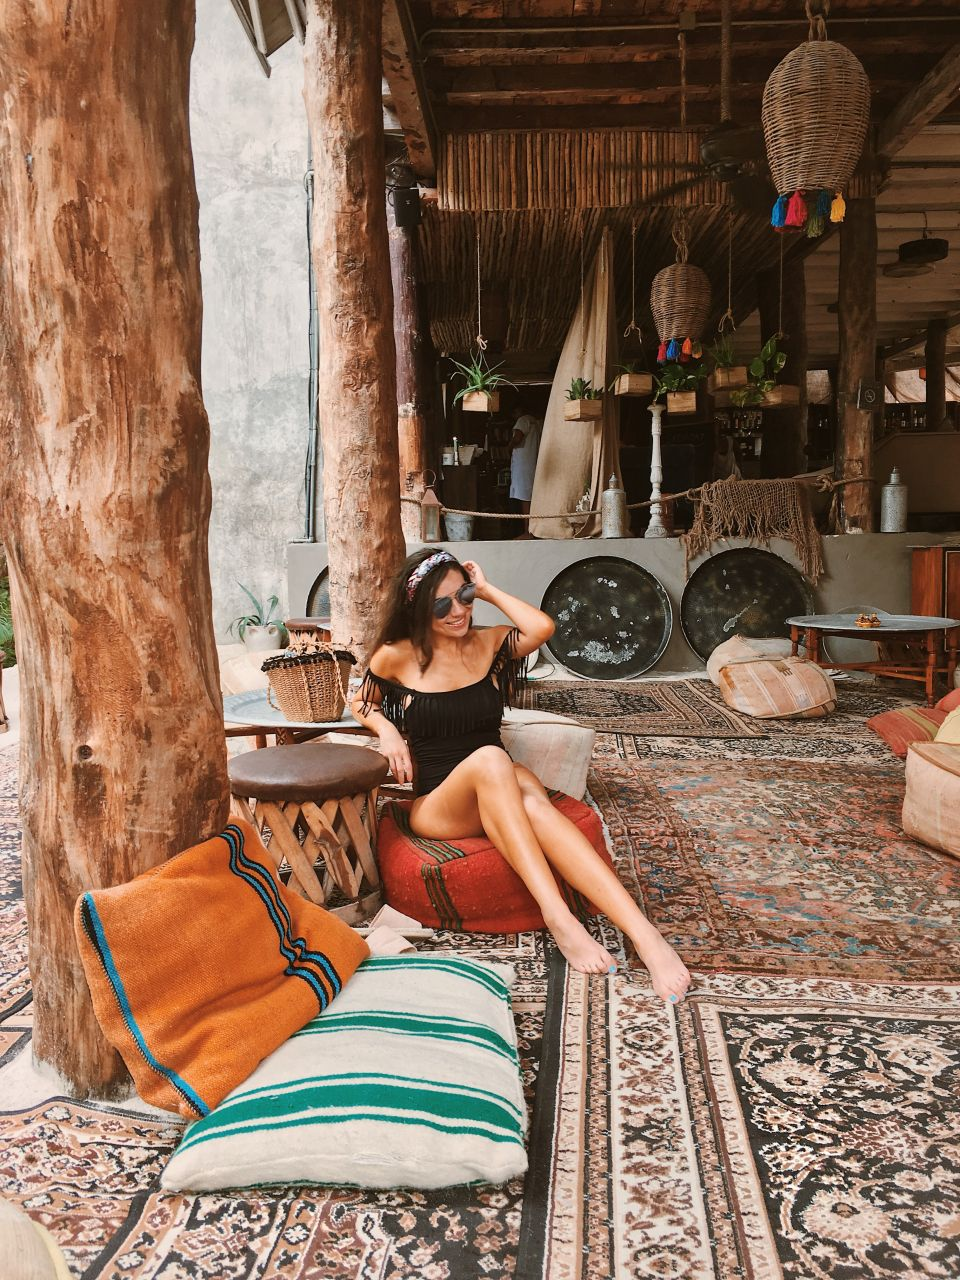 Where to stay in Tulum: Nomade Tulum